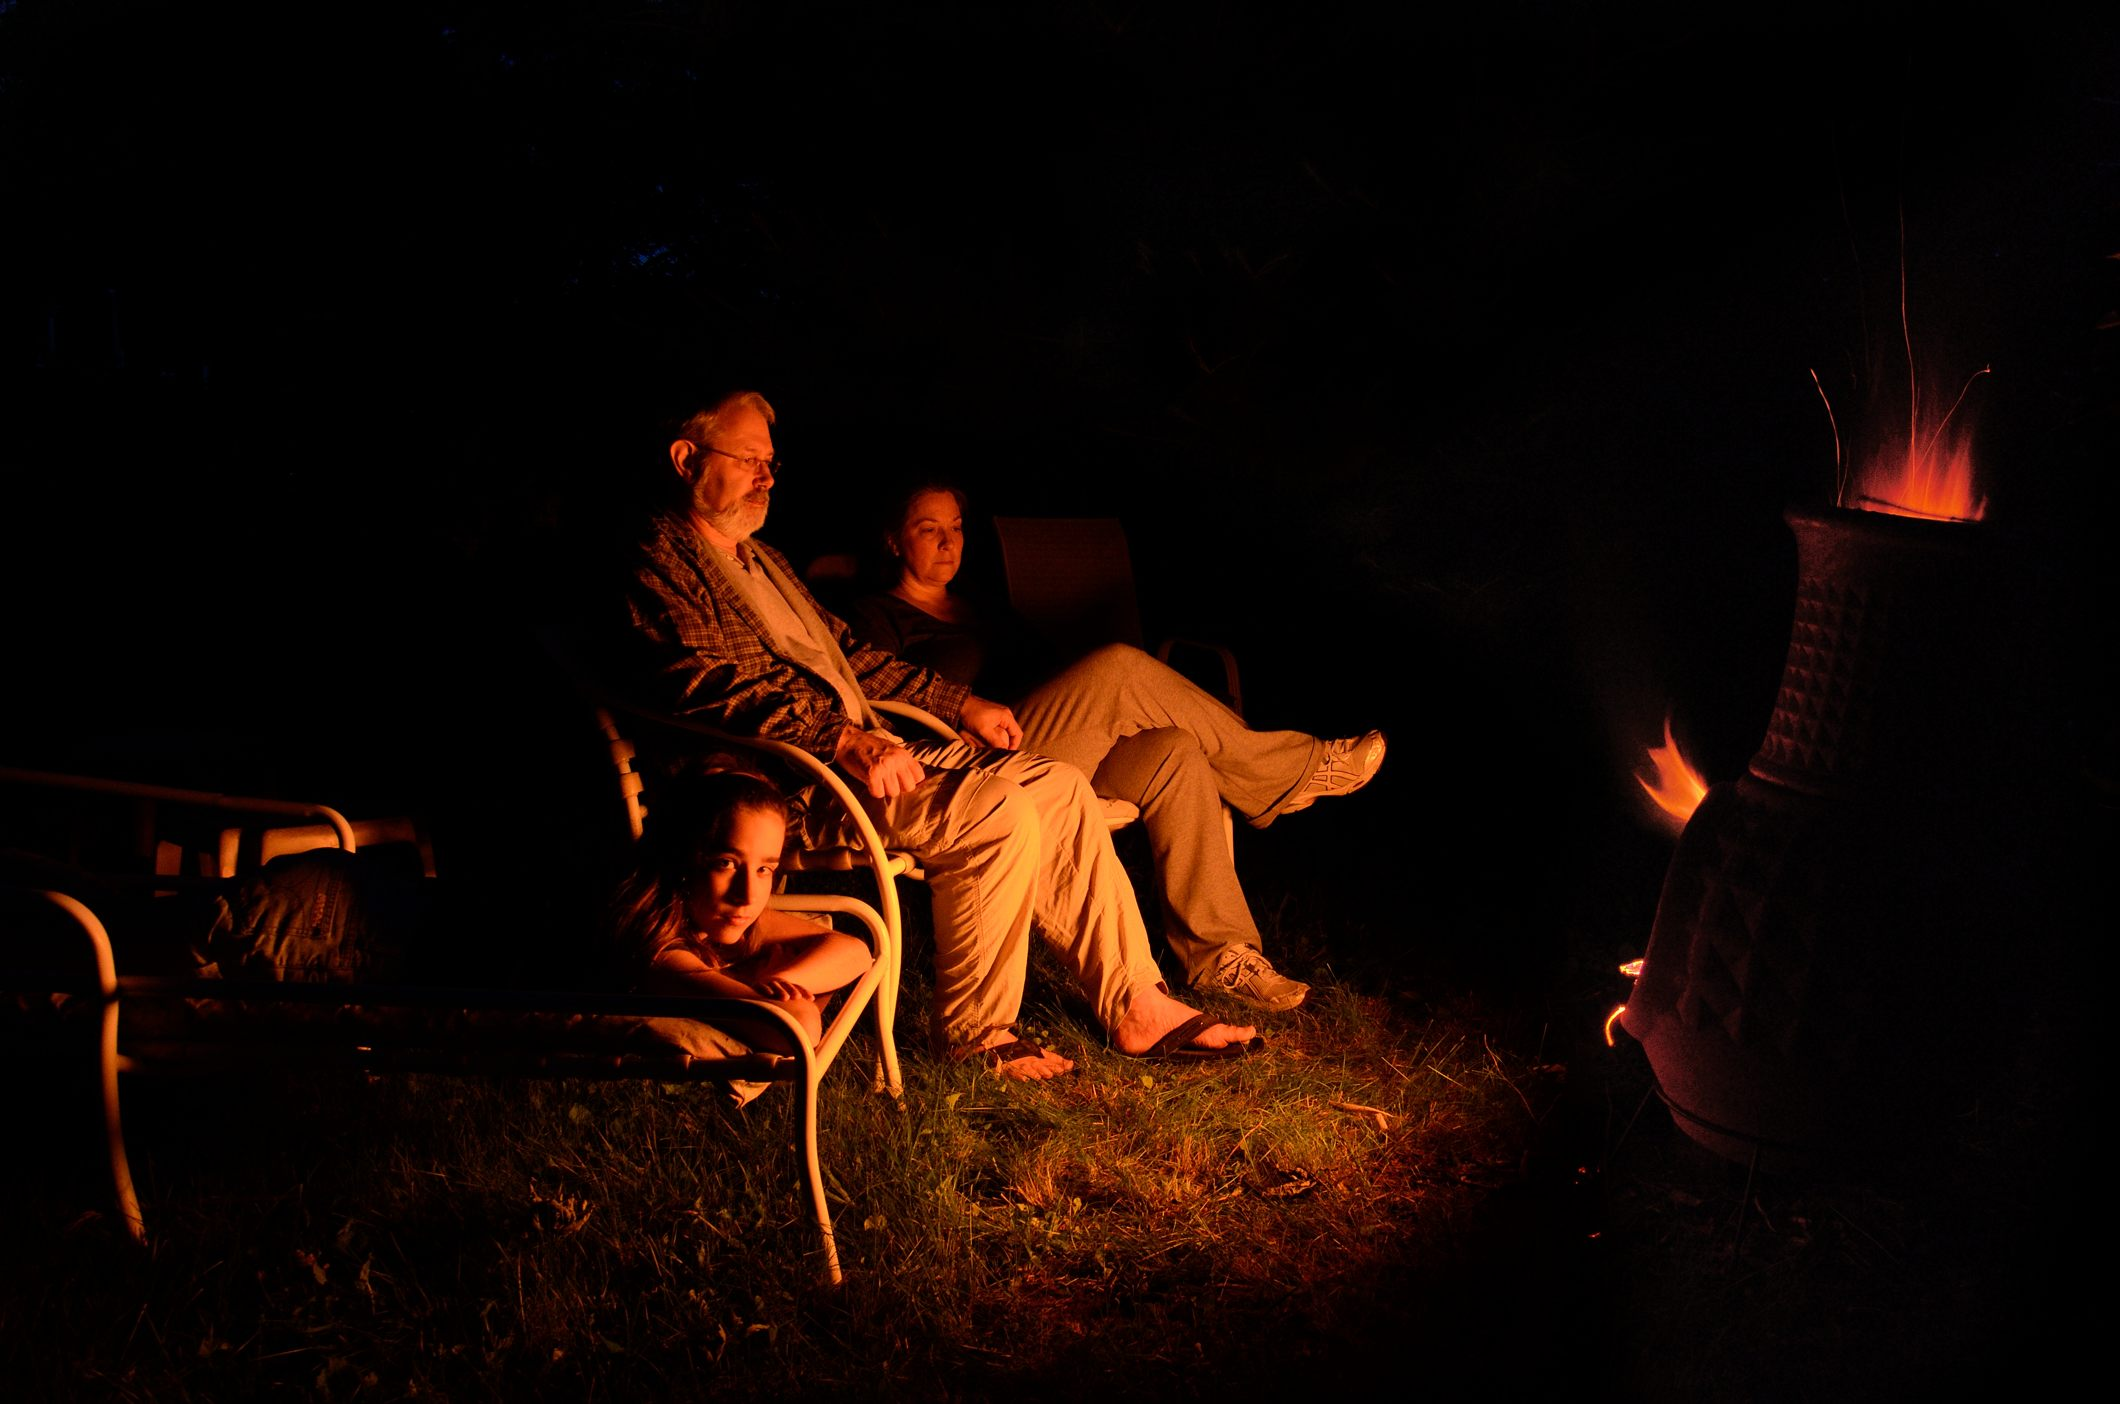 Photograph of Lanie, Gary and Ginger Allman sitting in the backyard lit by the orange glow of a chiminea